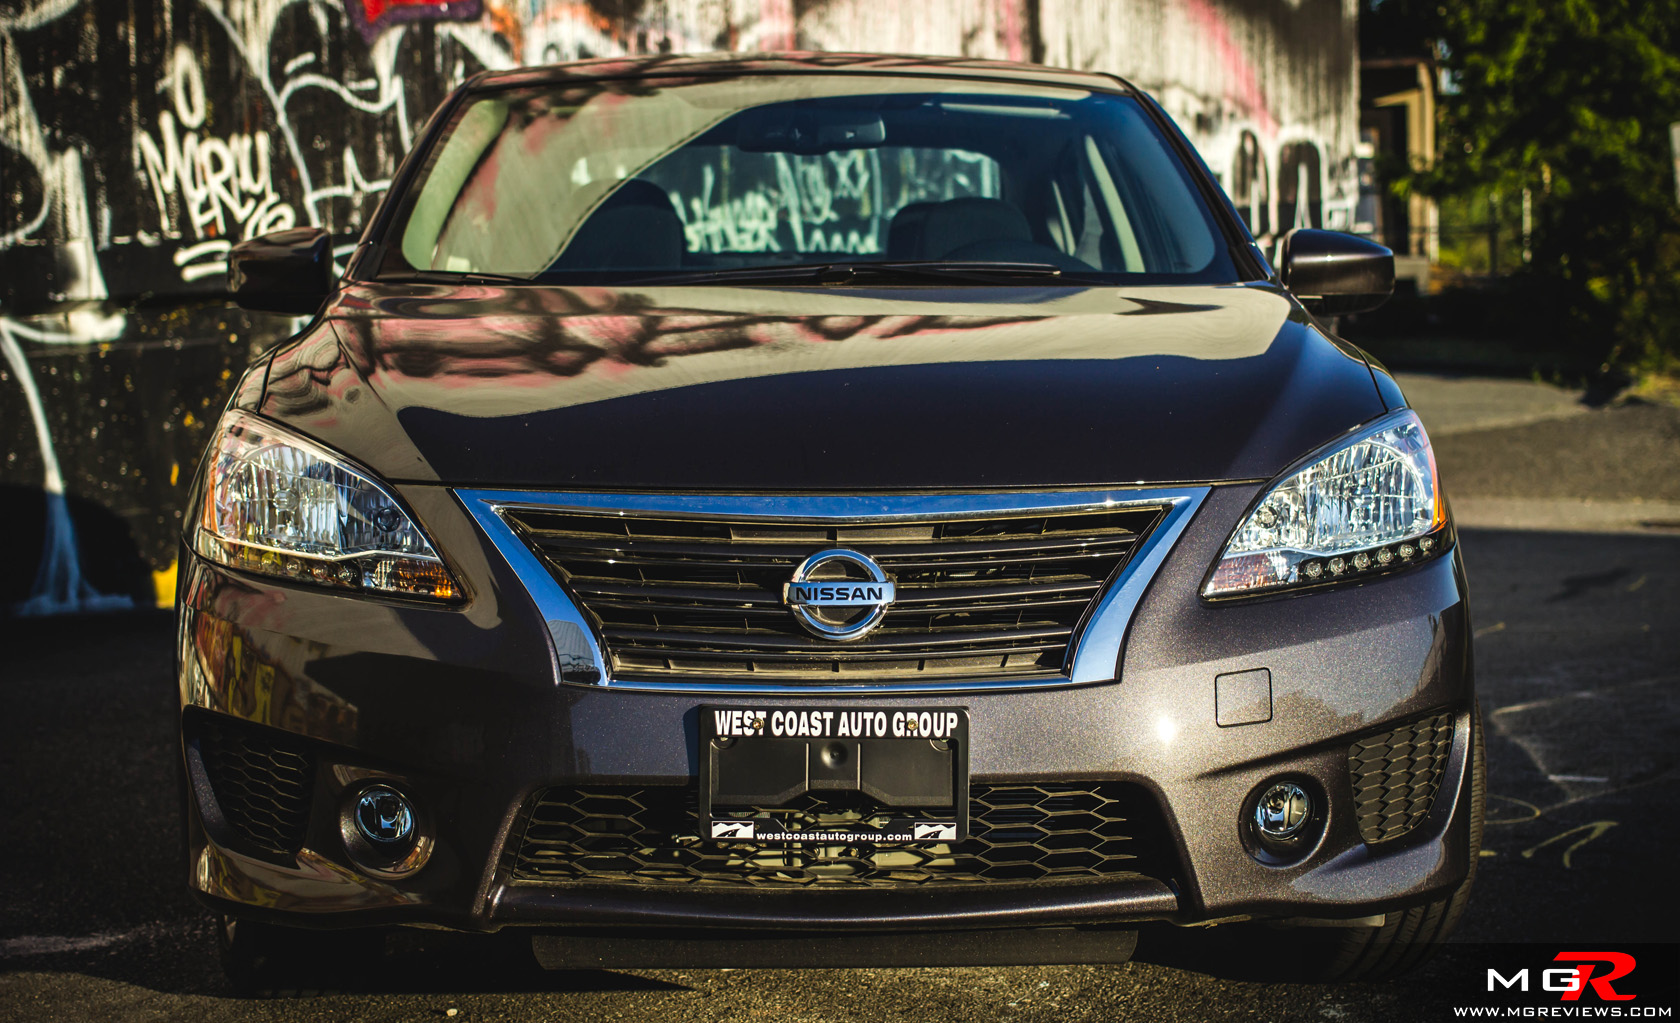 For This 7th Generation Sentra, Nissan Took It To The Gym And It Lost Some  Weight, It Had A Bit Of Botox Here, And Some Liposuction There.